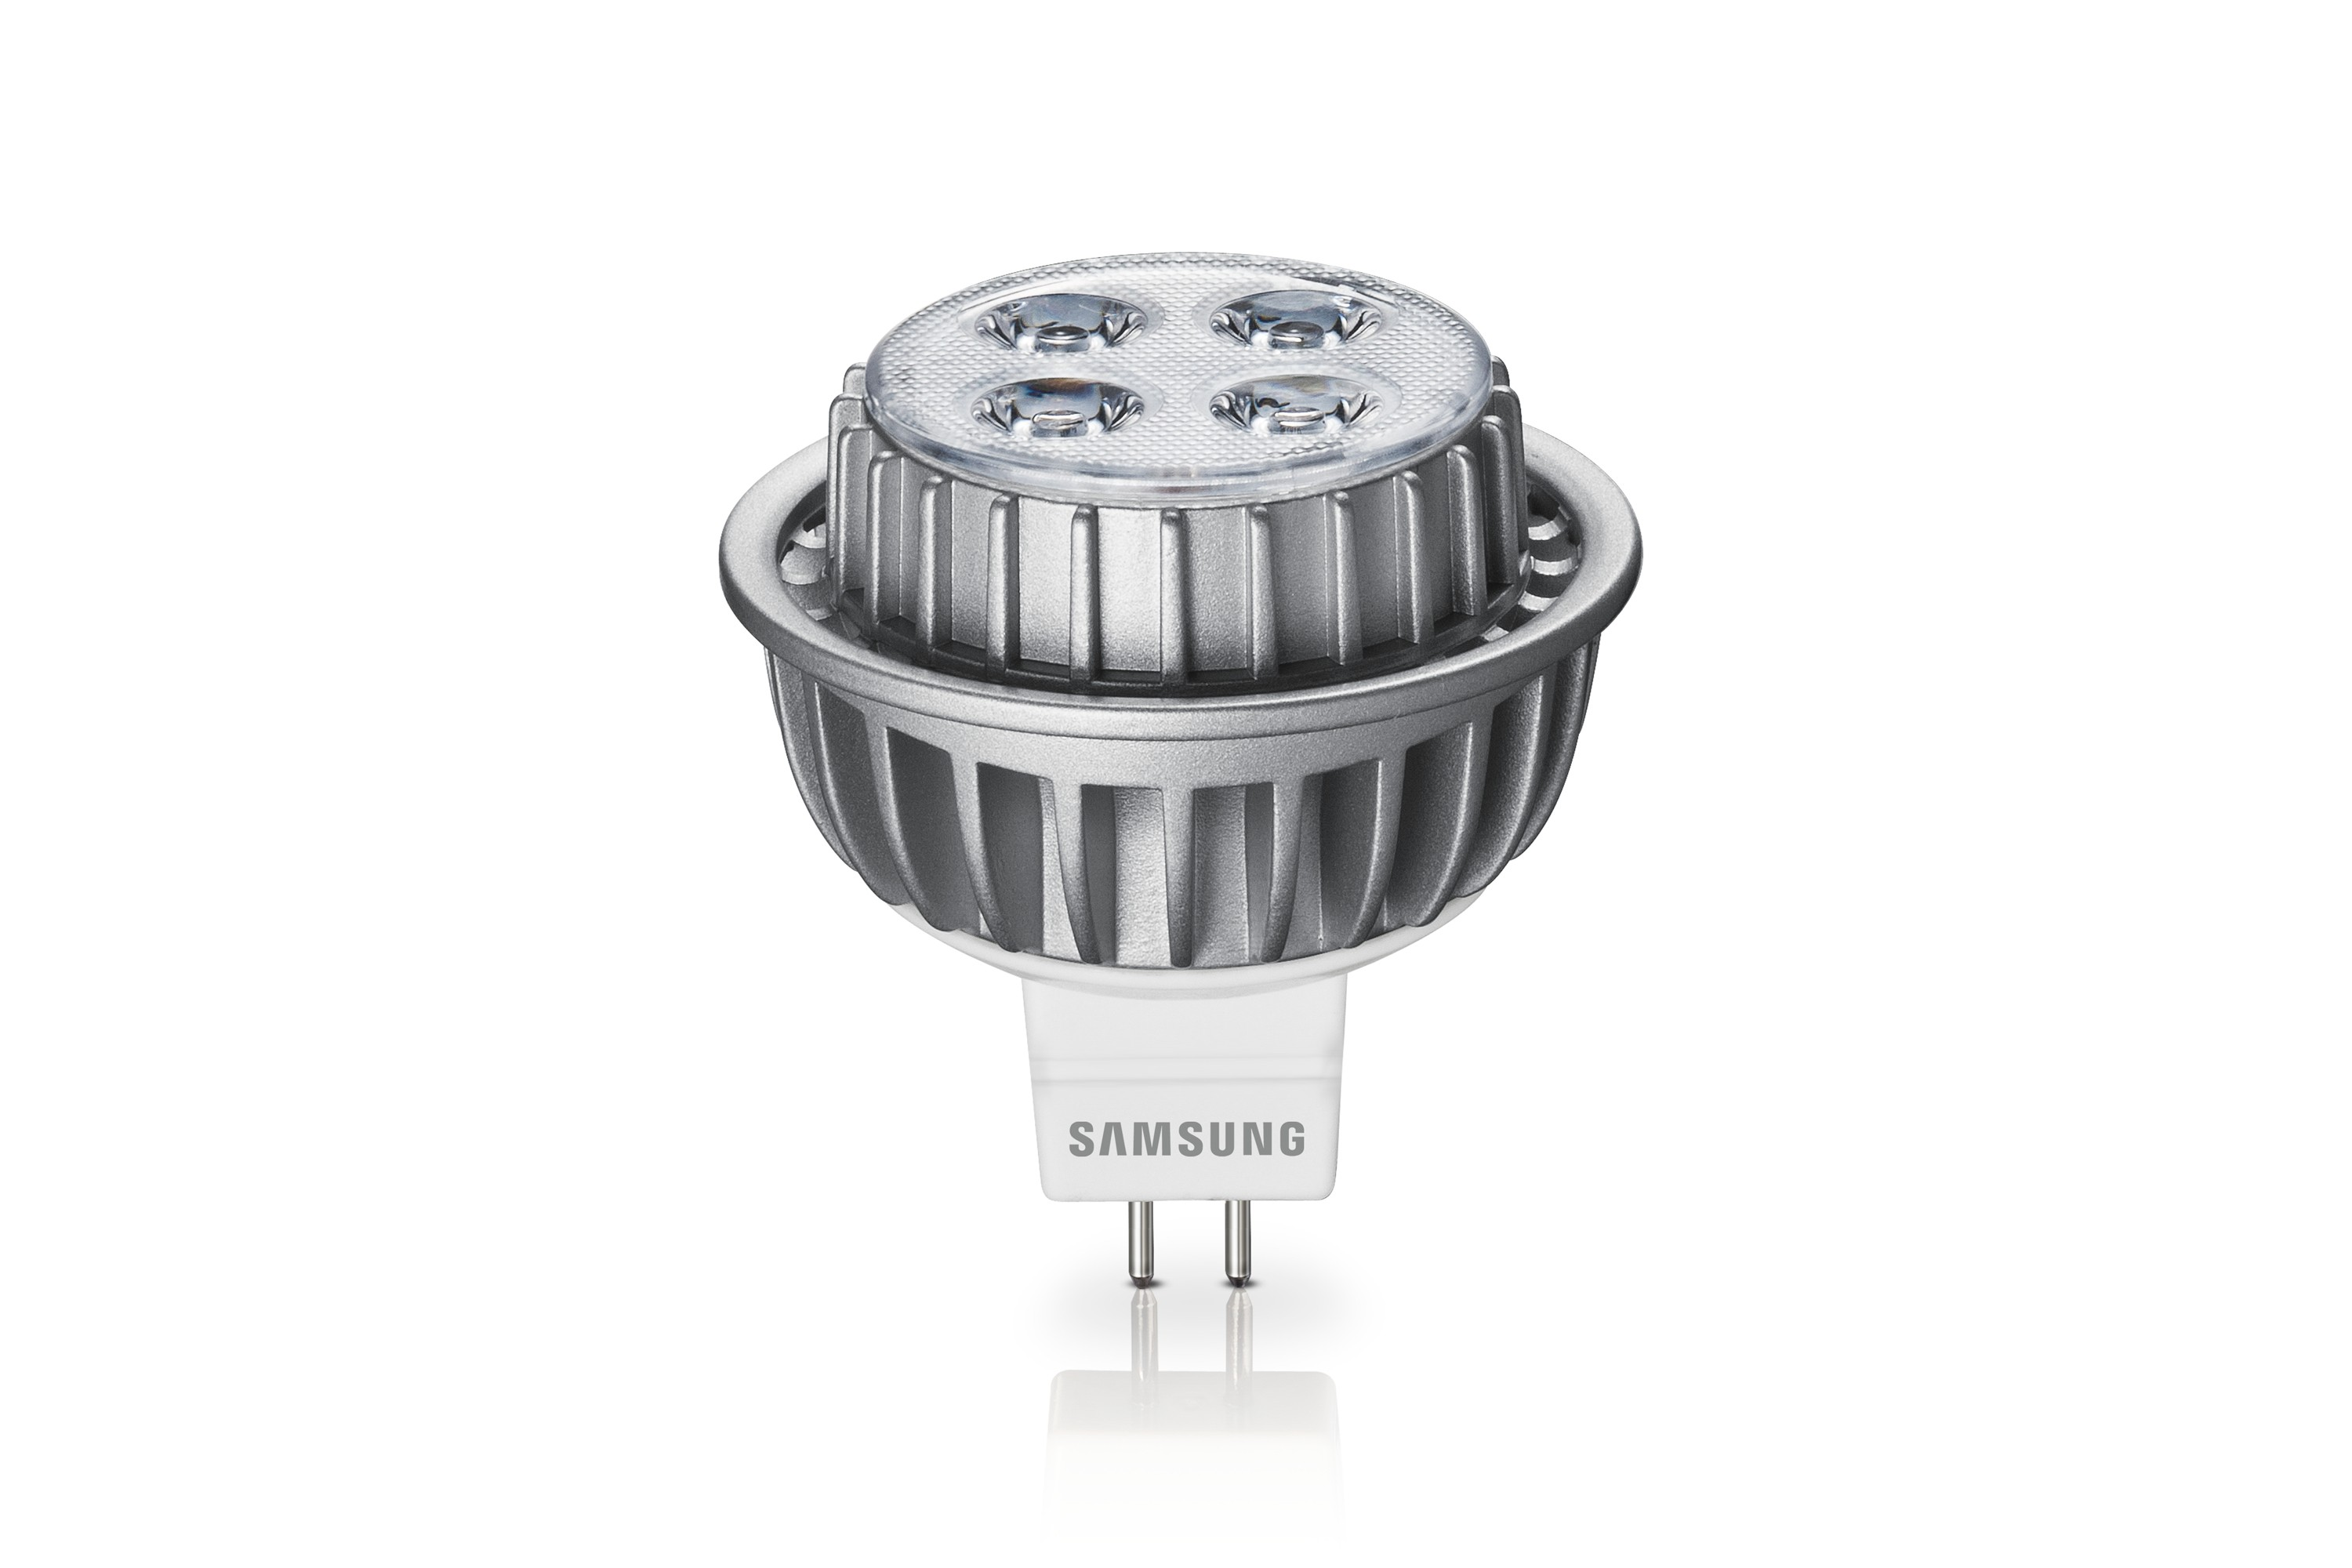 Dimbare Led Spots Ohmeron Mr16 Led Spot Dimmable 7w 370lm Warm White 12v